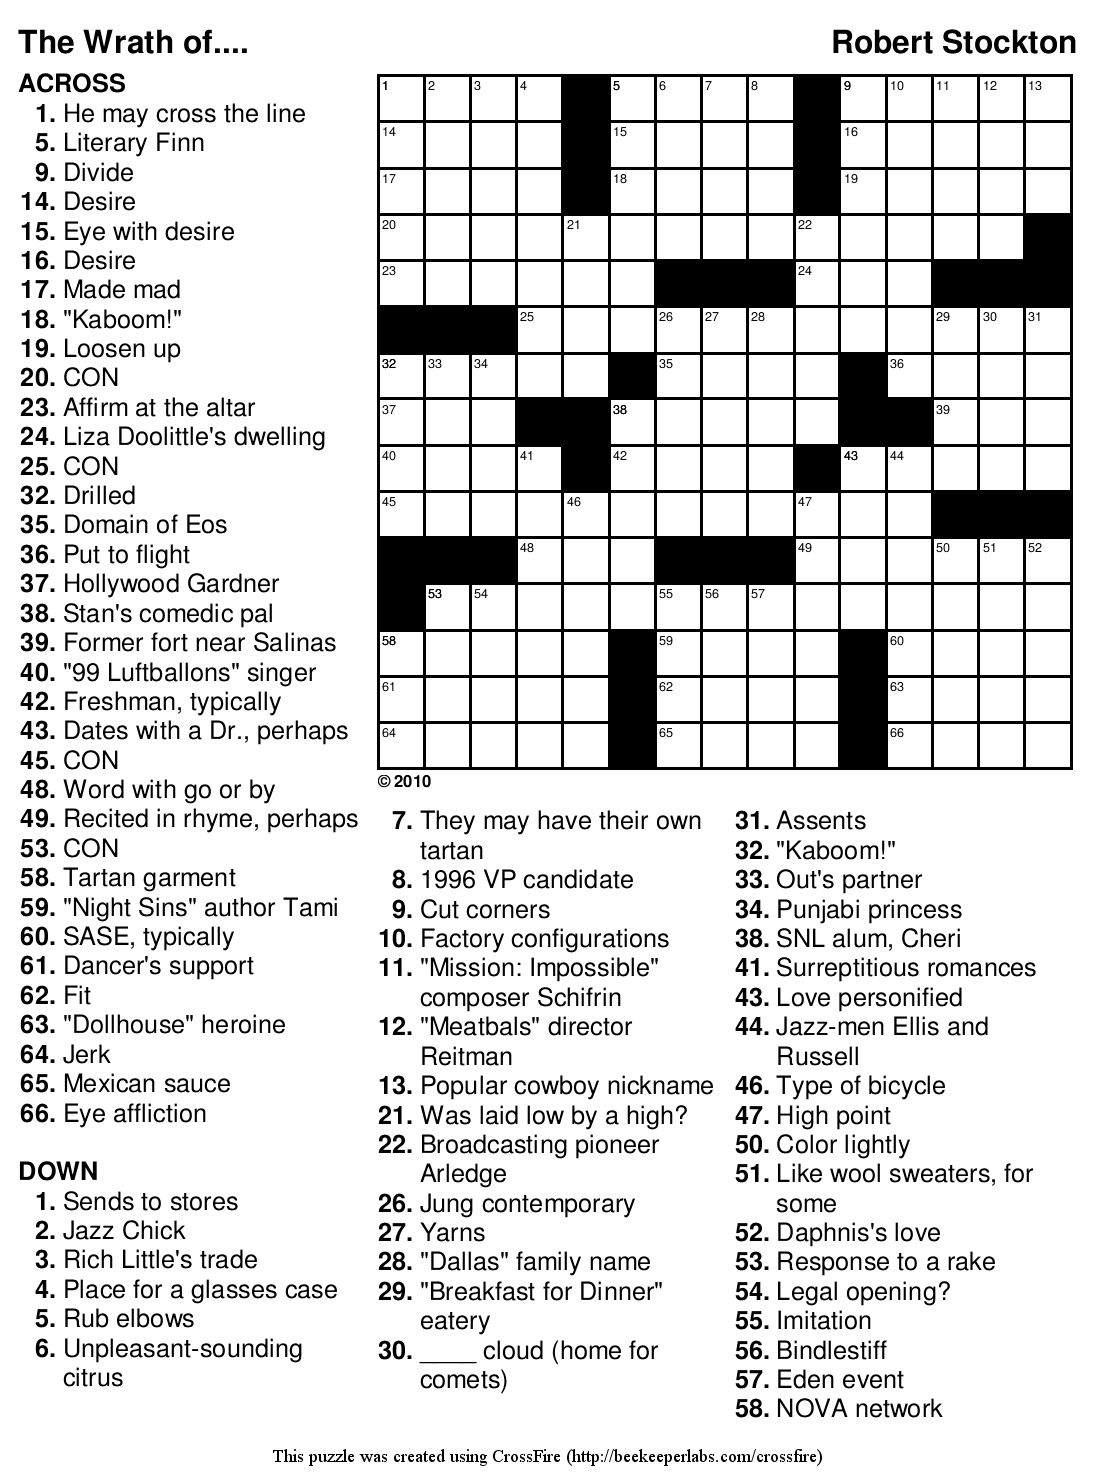 Marvelous Crossword Puzzles Easy Printable Free Org | Chas's Board - Free Easy Printable Crossword Puzzles With Answers